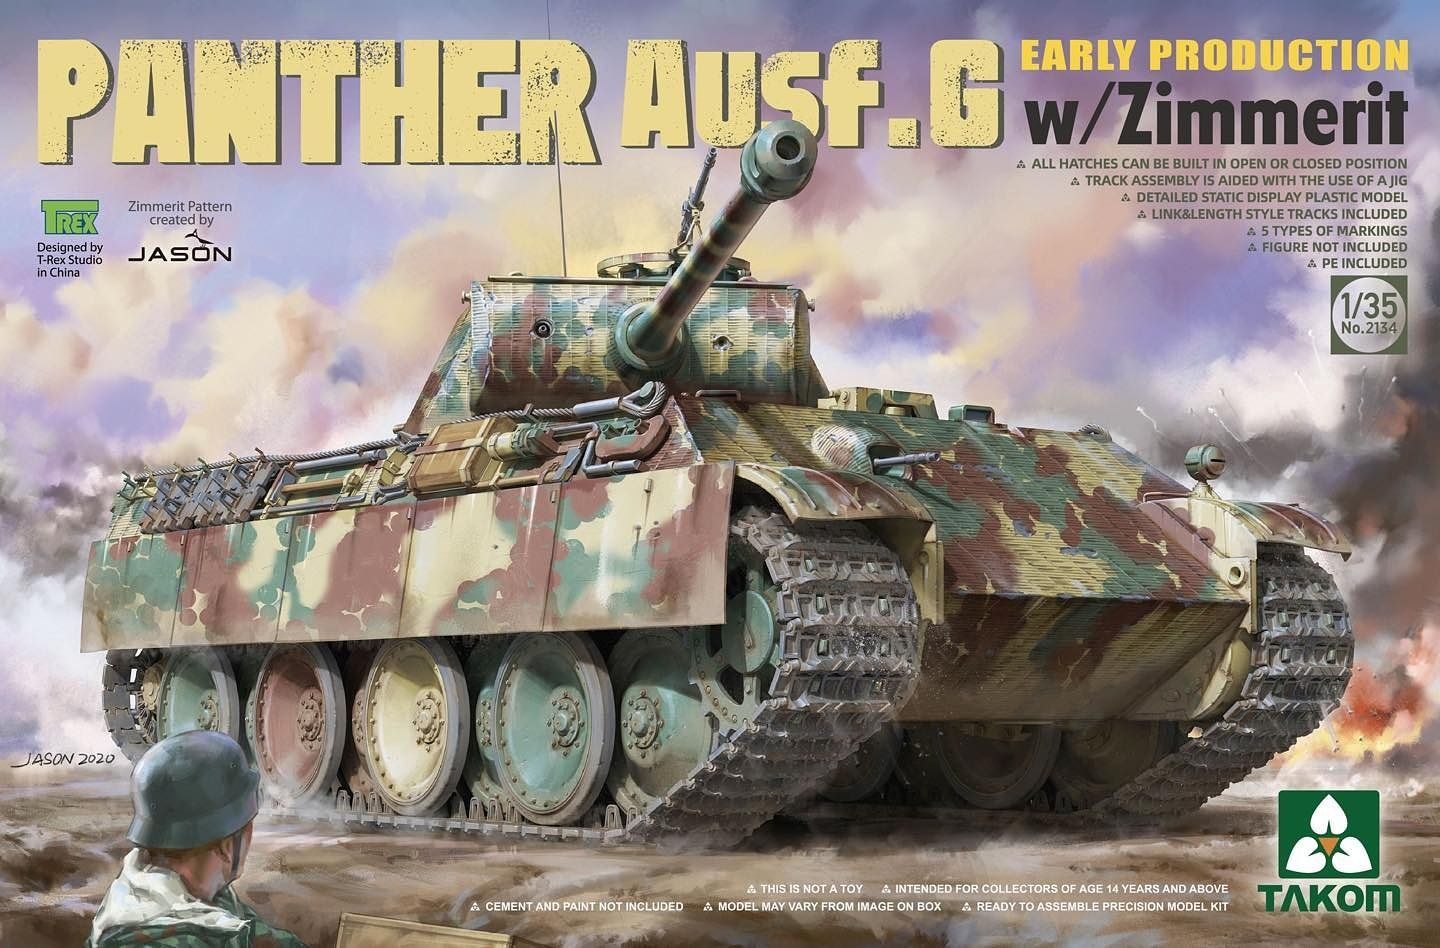 Takom 1/35 Panther Ausf.G Early Production w/Zimmerit Tank